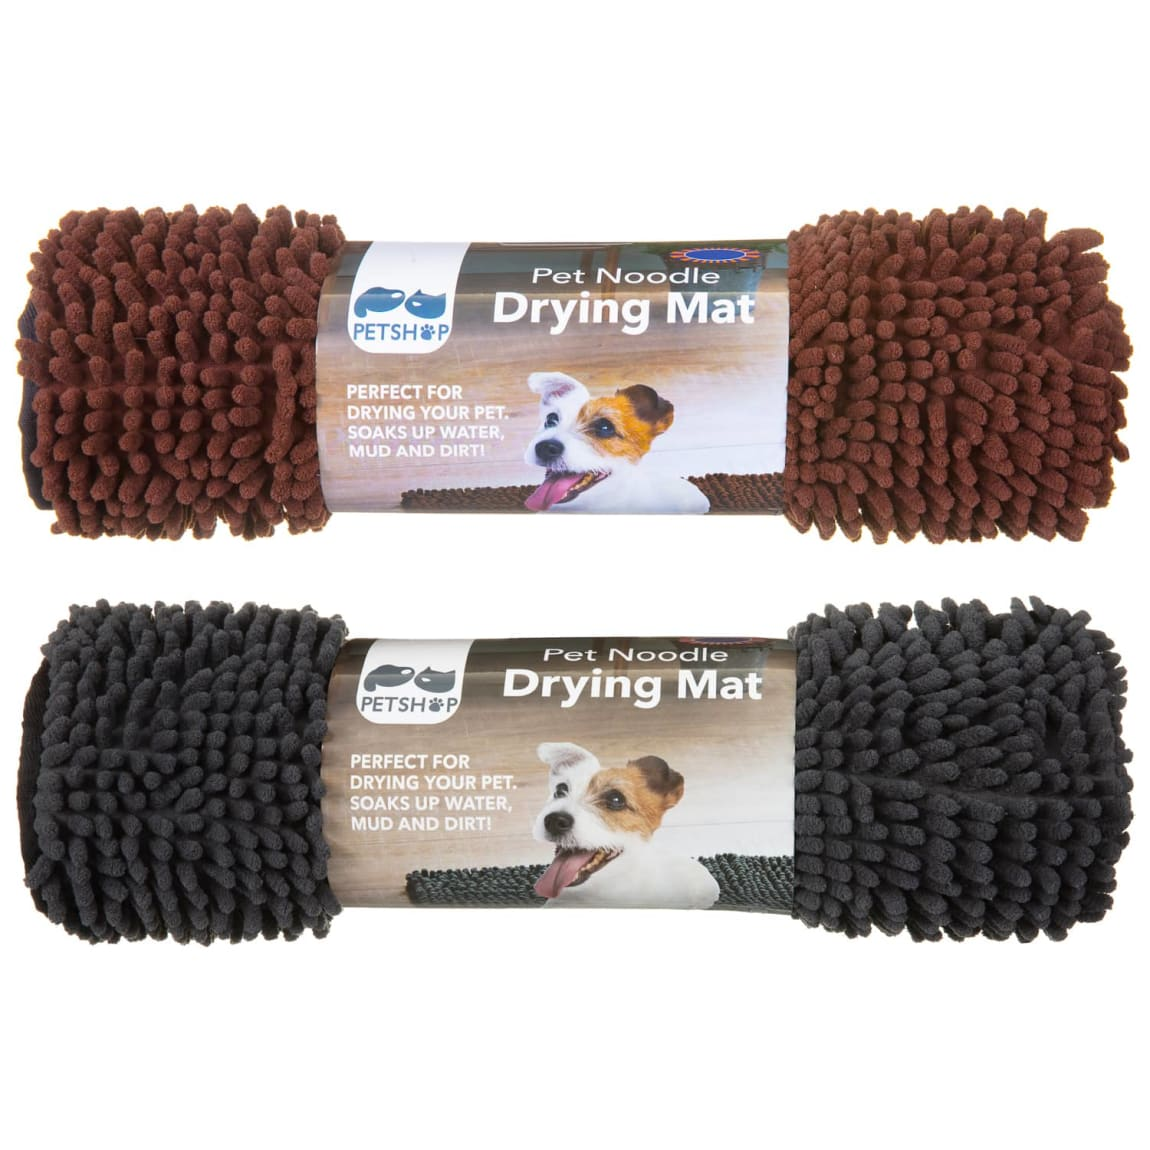 Pet Noodle Drying Mat - Brown